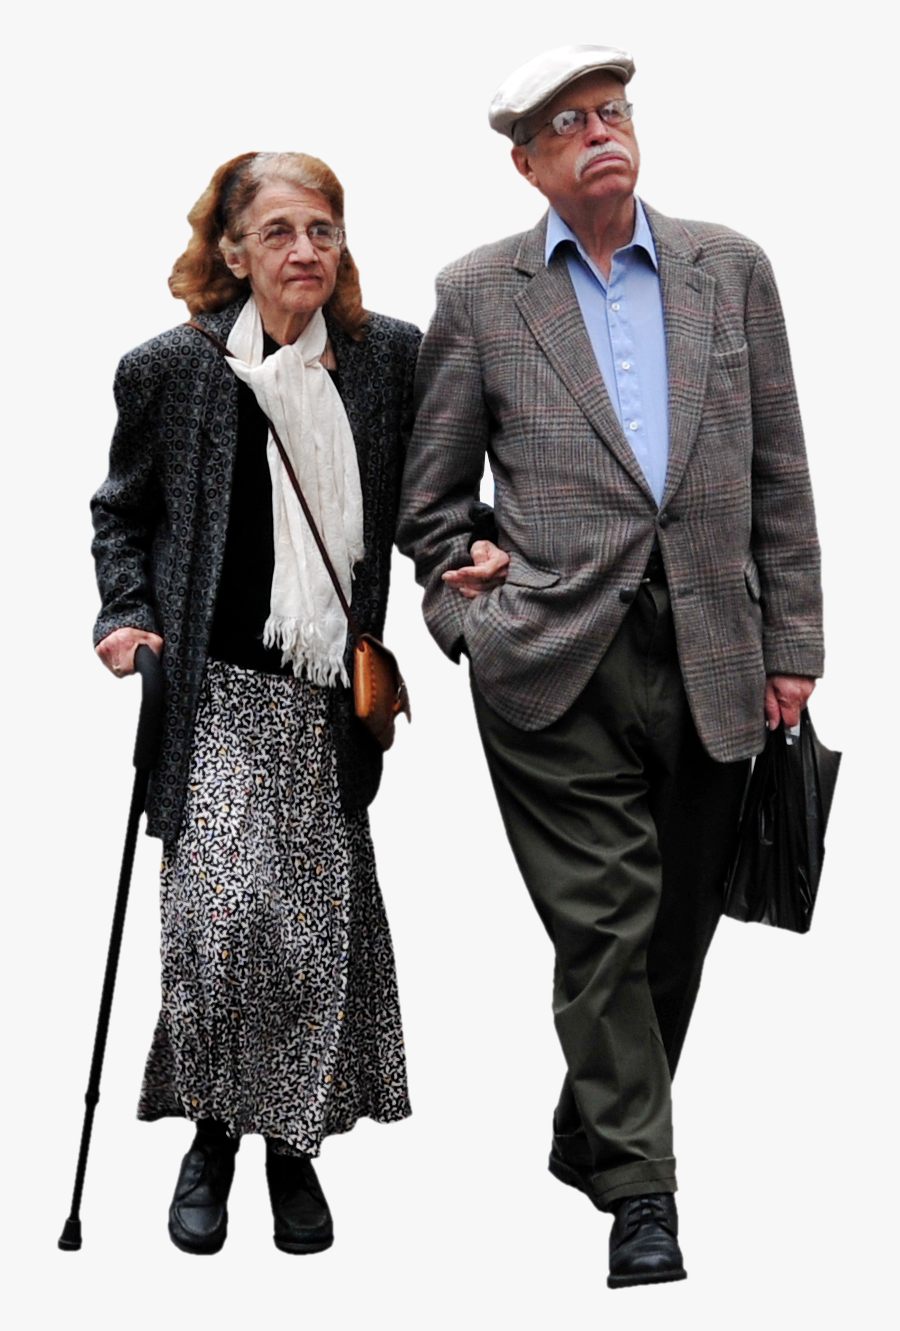 Transparent Old Couple Clipart - Architecture Old People Walking Png, Transparent Clipart